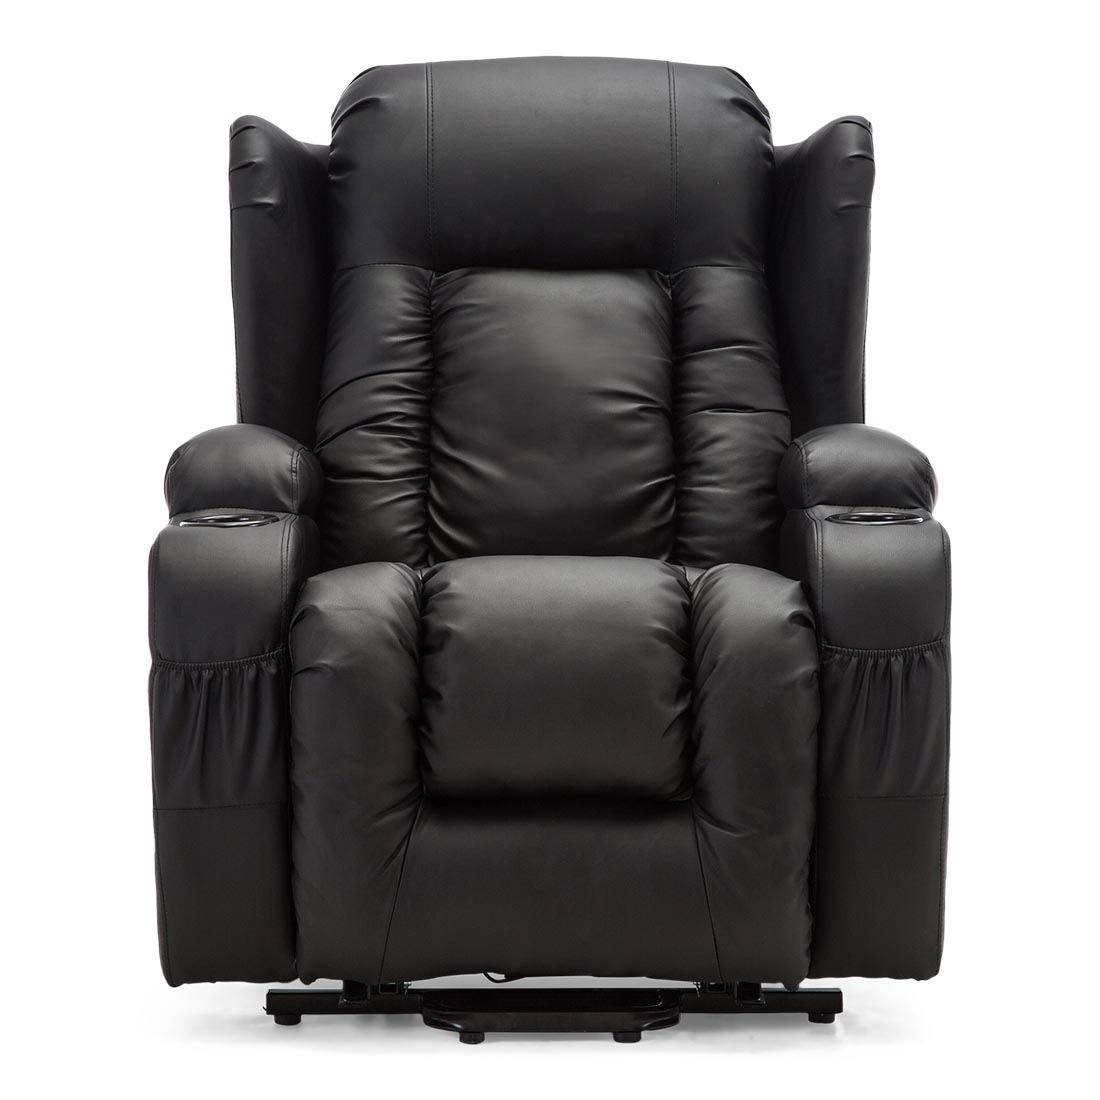 CAESAR-DUAL-MOTOR-RISER-RECLINER-LEATHER-MOBILITY-ARMCHAIR-MASSAGE-HEATED-CHAIR thumbnail 8